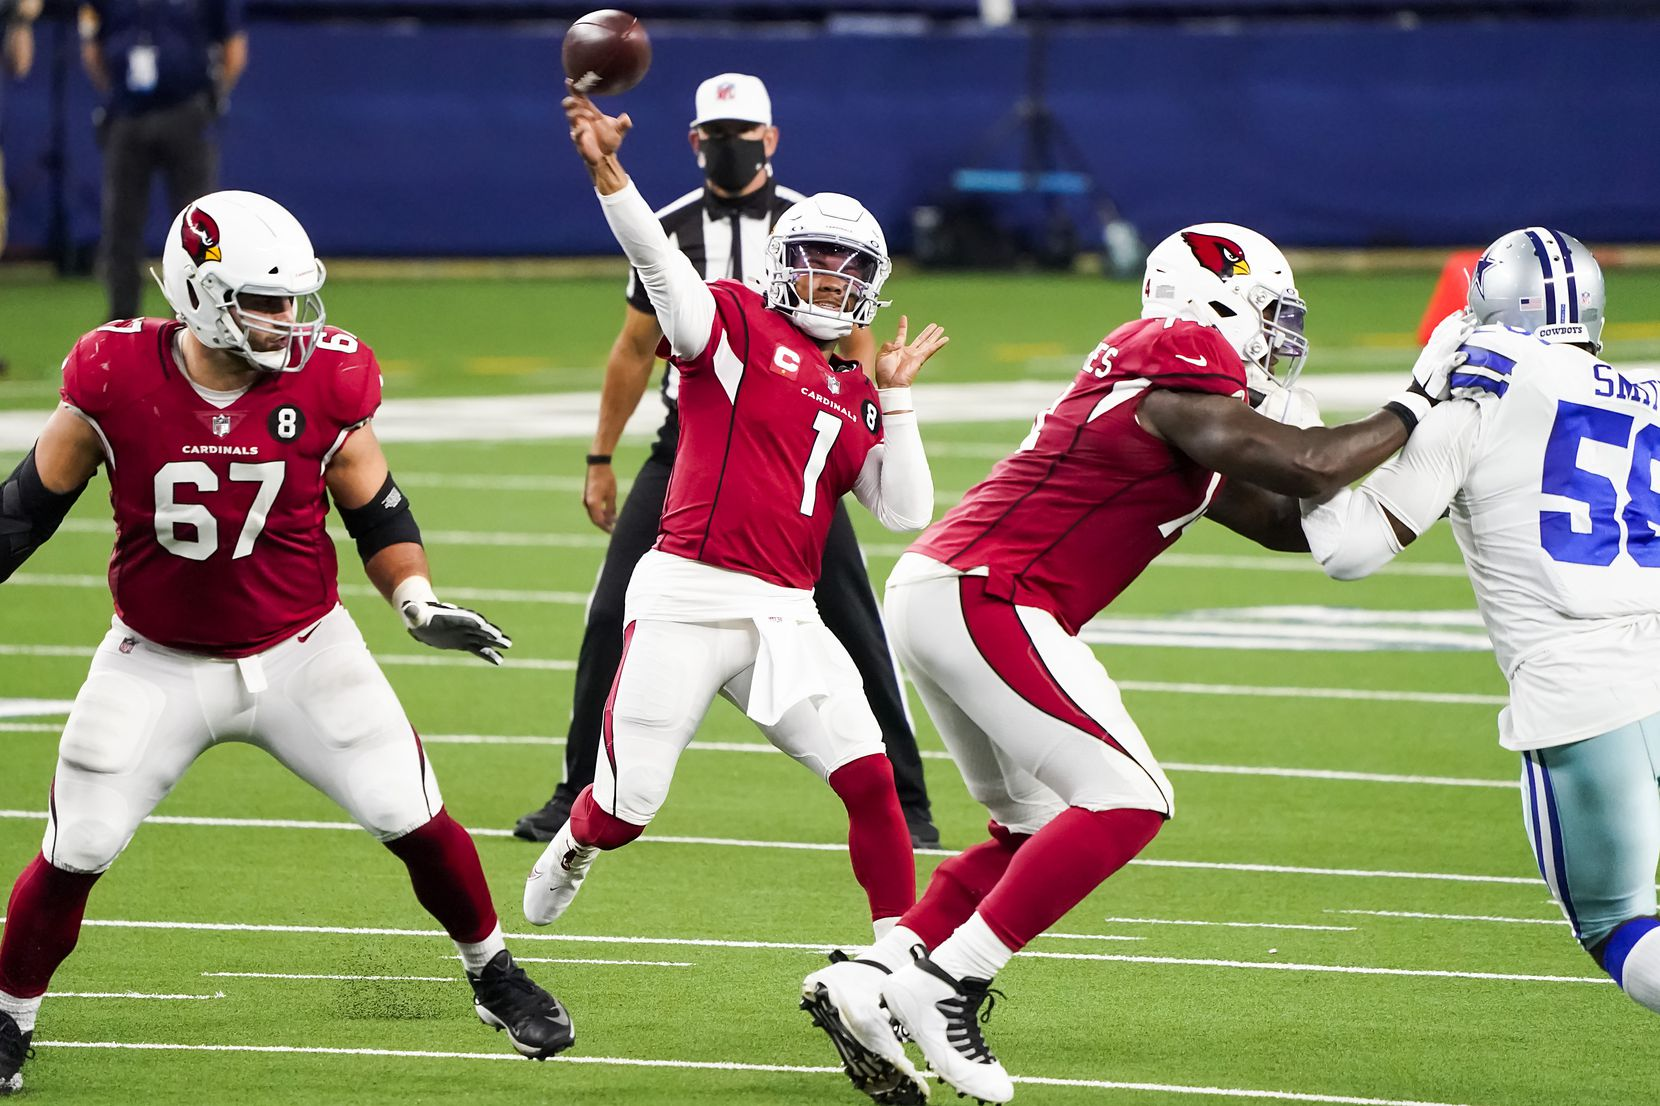 Arizona Cardinals quarterback Kyler Murray (1) throws a pass over Dallas Cowboys defensive end Aldon Smith (58) during the second quarter of an NFL football game at AT&T Stadium on Monday, Oct. 19, 2020, in Arlington. (Smiley N. Pool/The Dallas Morning News)